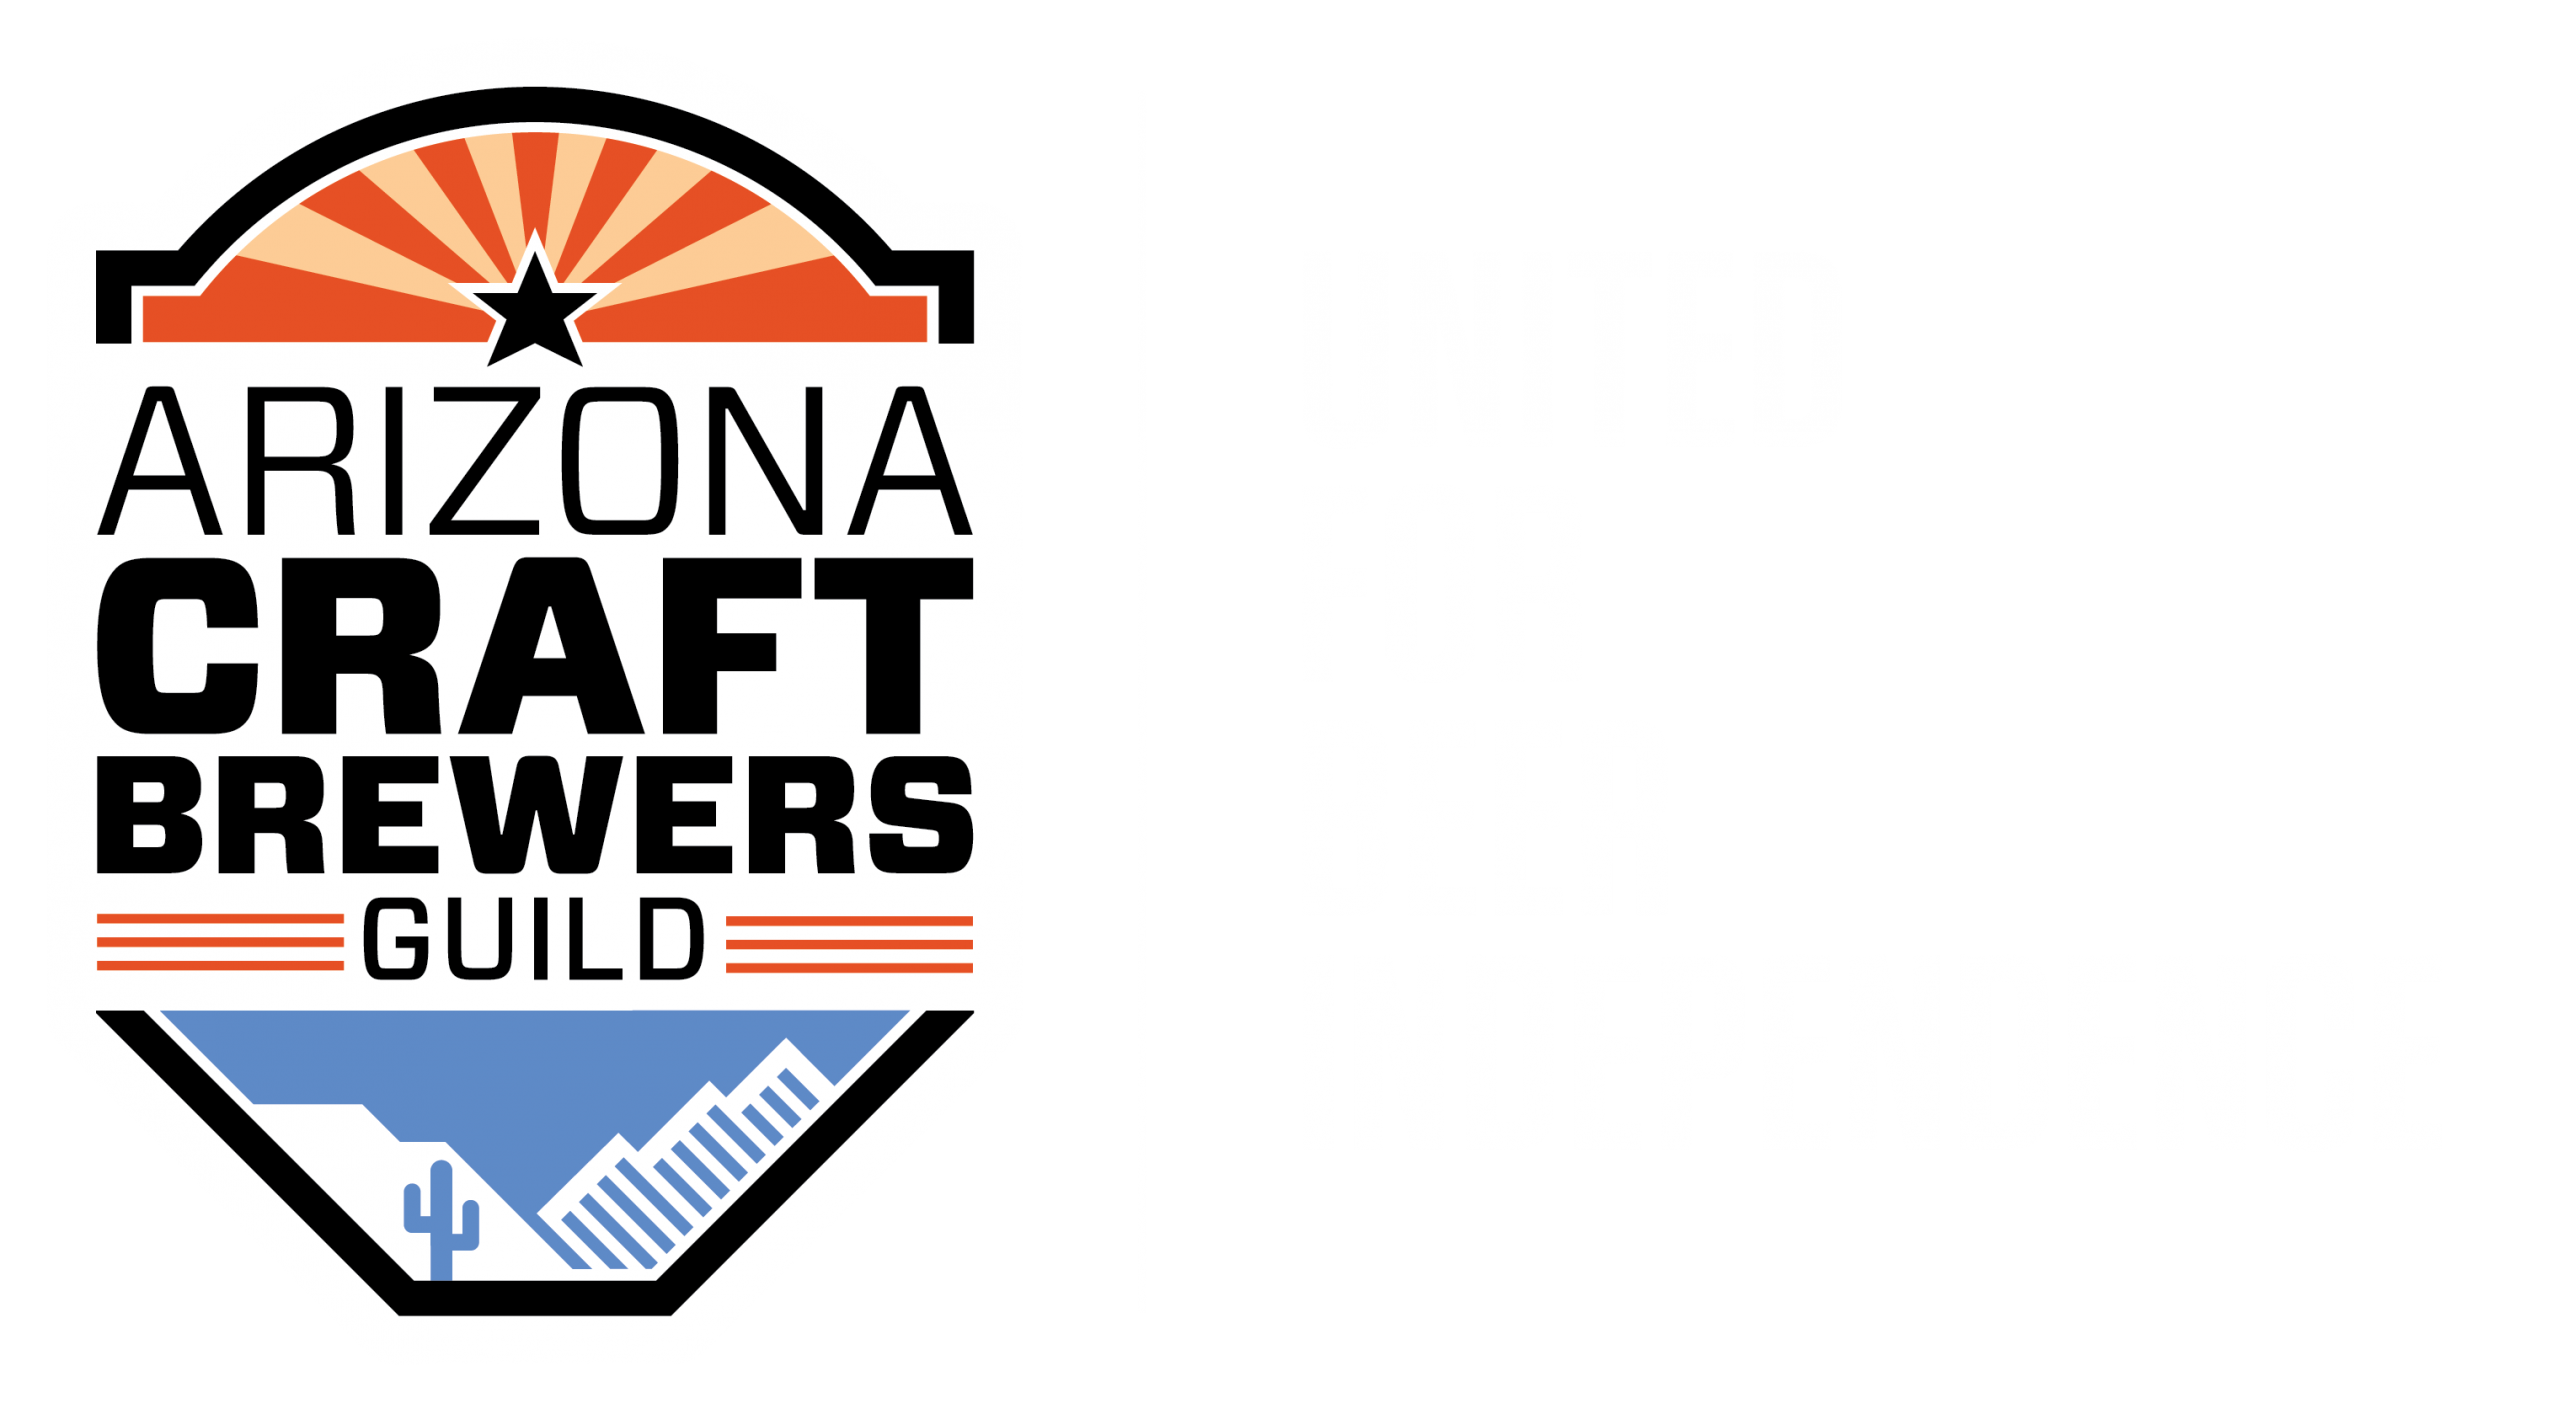 Desert Monks Brewery | Arizona Craft Brewers Guild